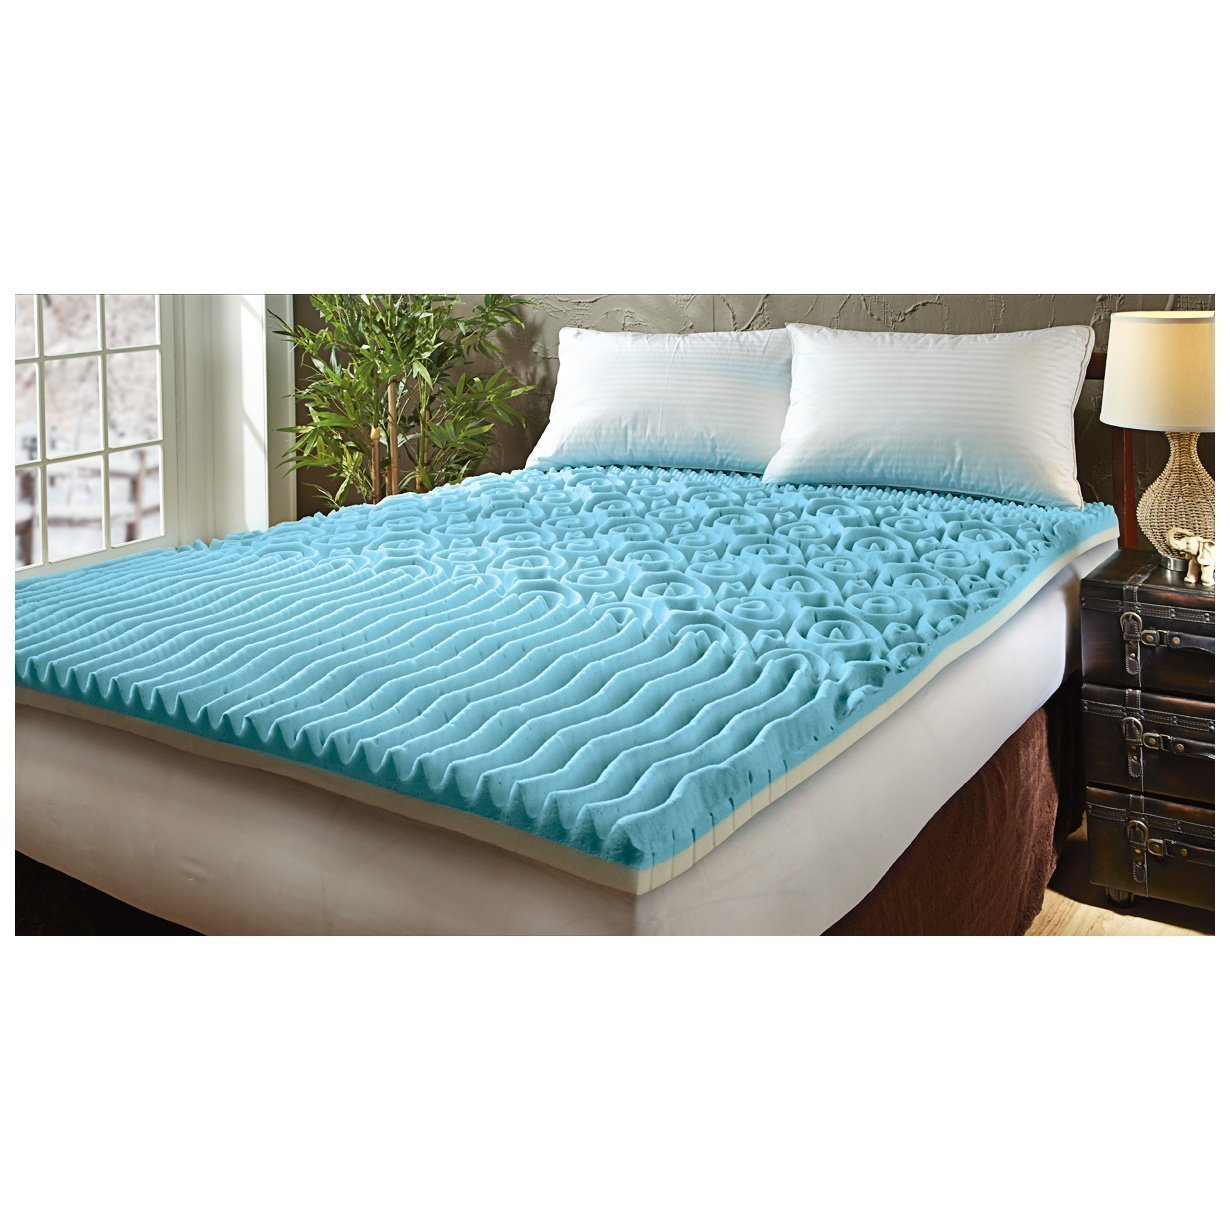 Broyhill Dual Layer Cooling Gel Memory Foam Mattress Topper, 3'' King